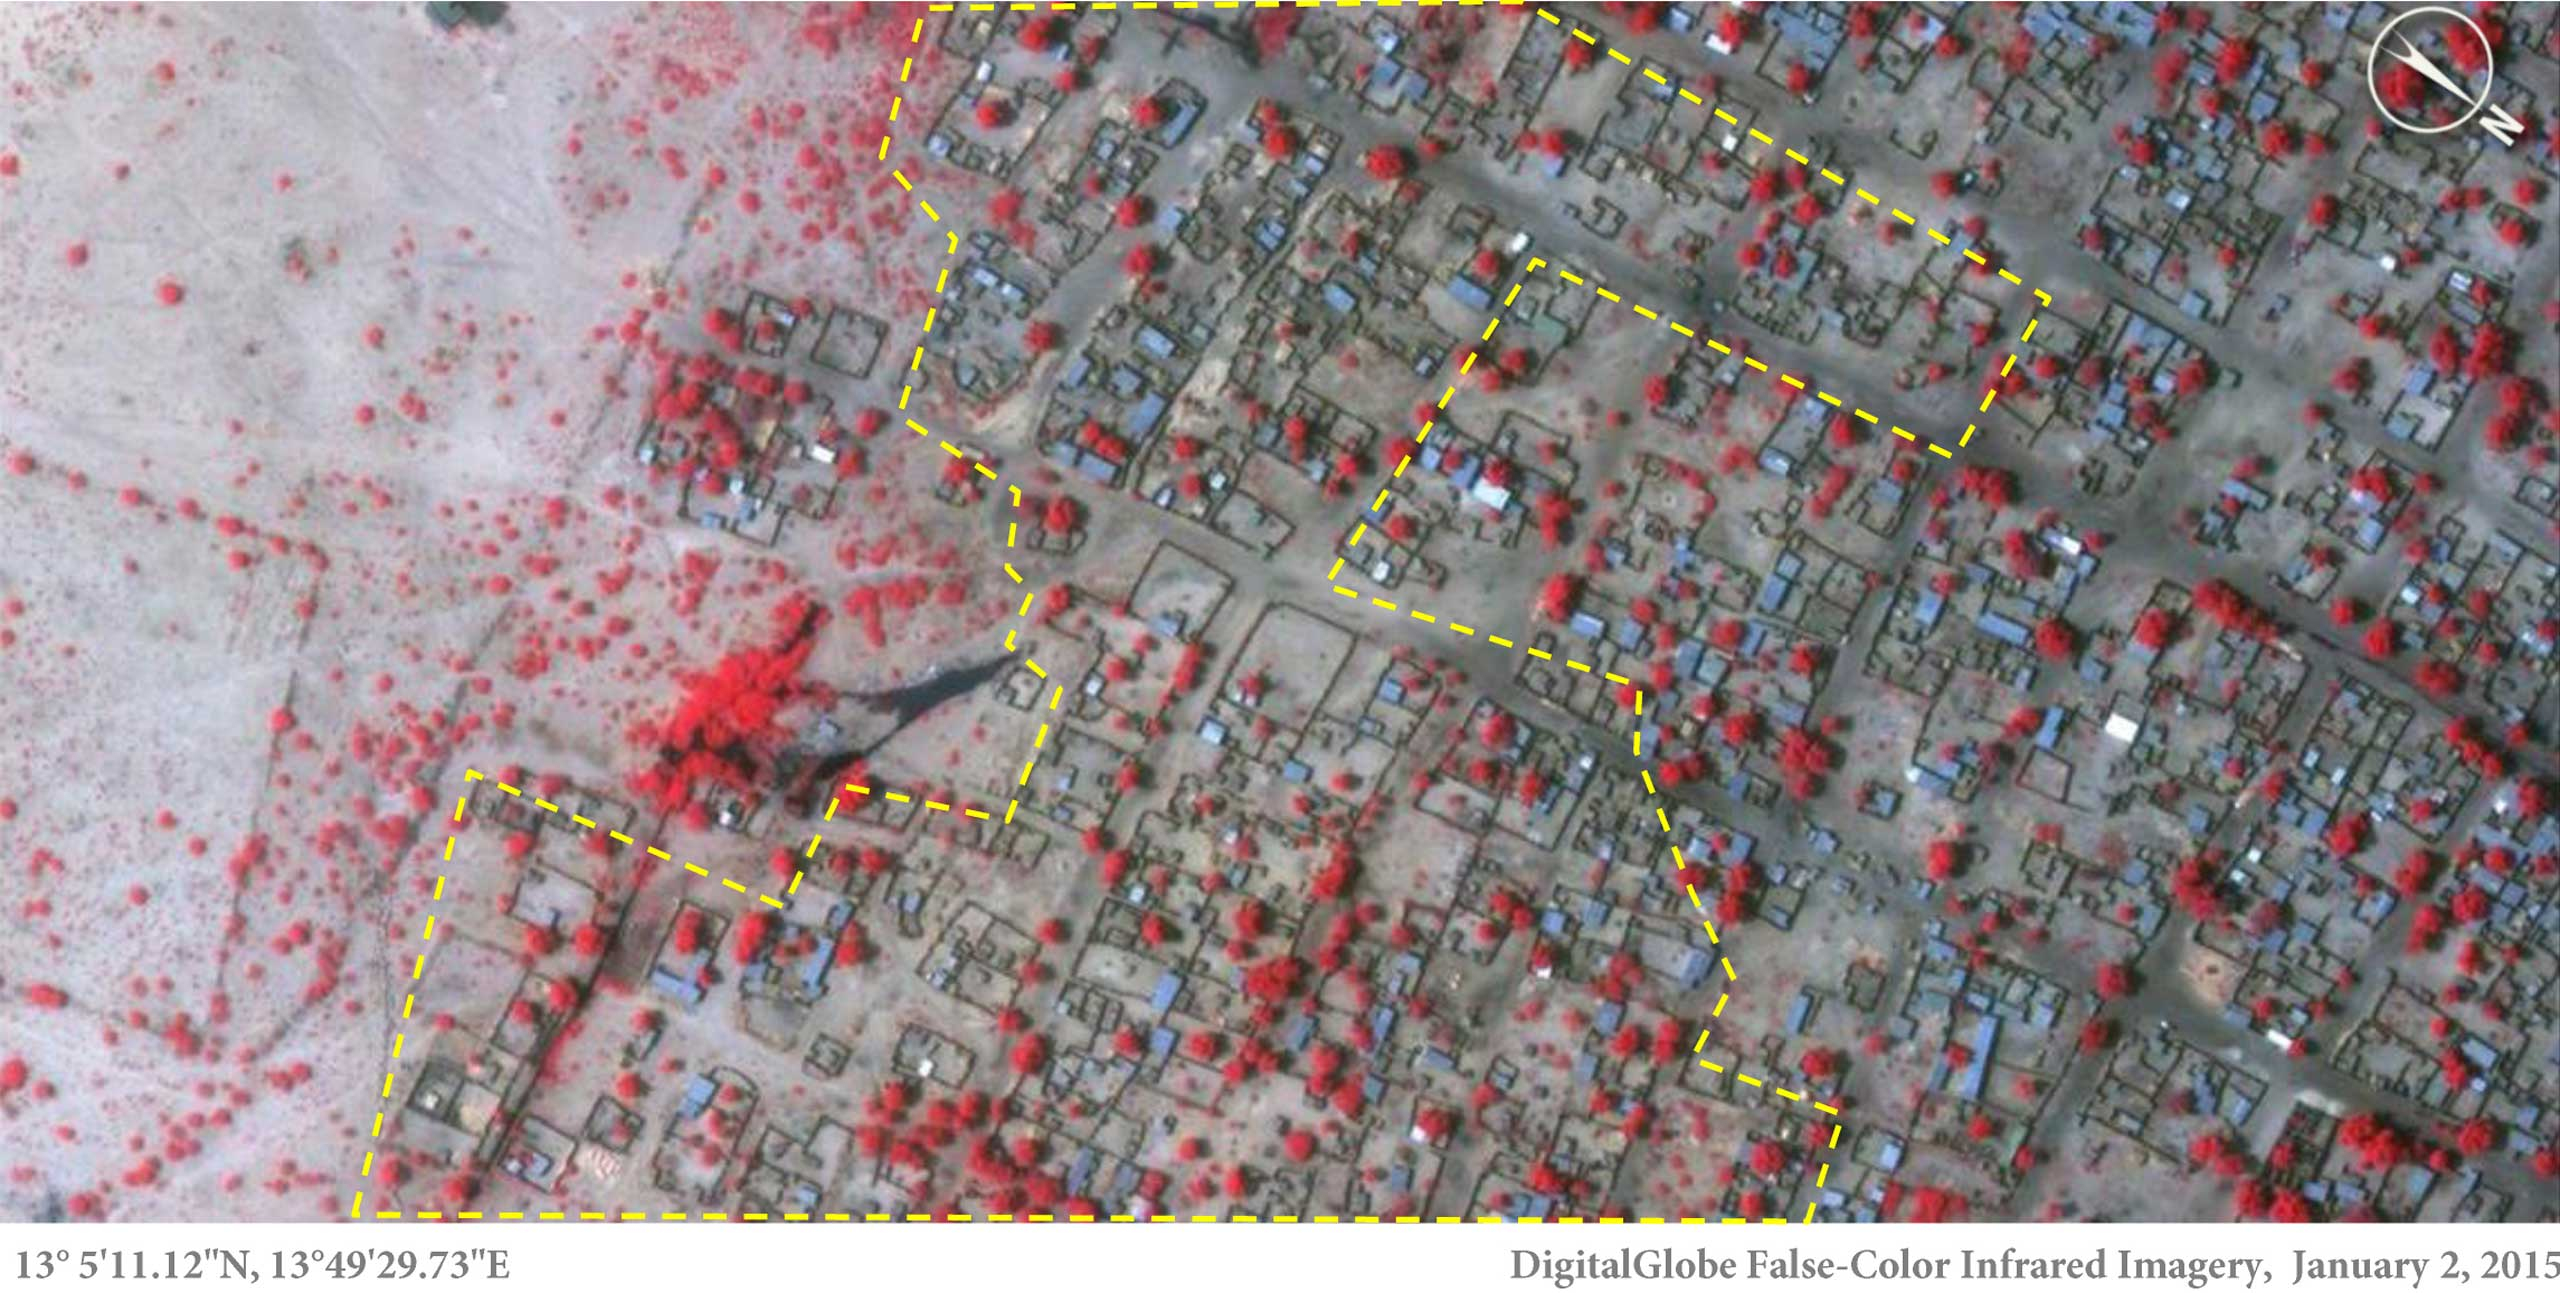 This image show many of the thatch roof structures are razed in Baga, northeastern Nigeria, on Jan. 7, 2015. (The dark color represents the burned areas while red indicates healthy vegetation.)